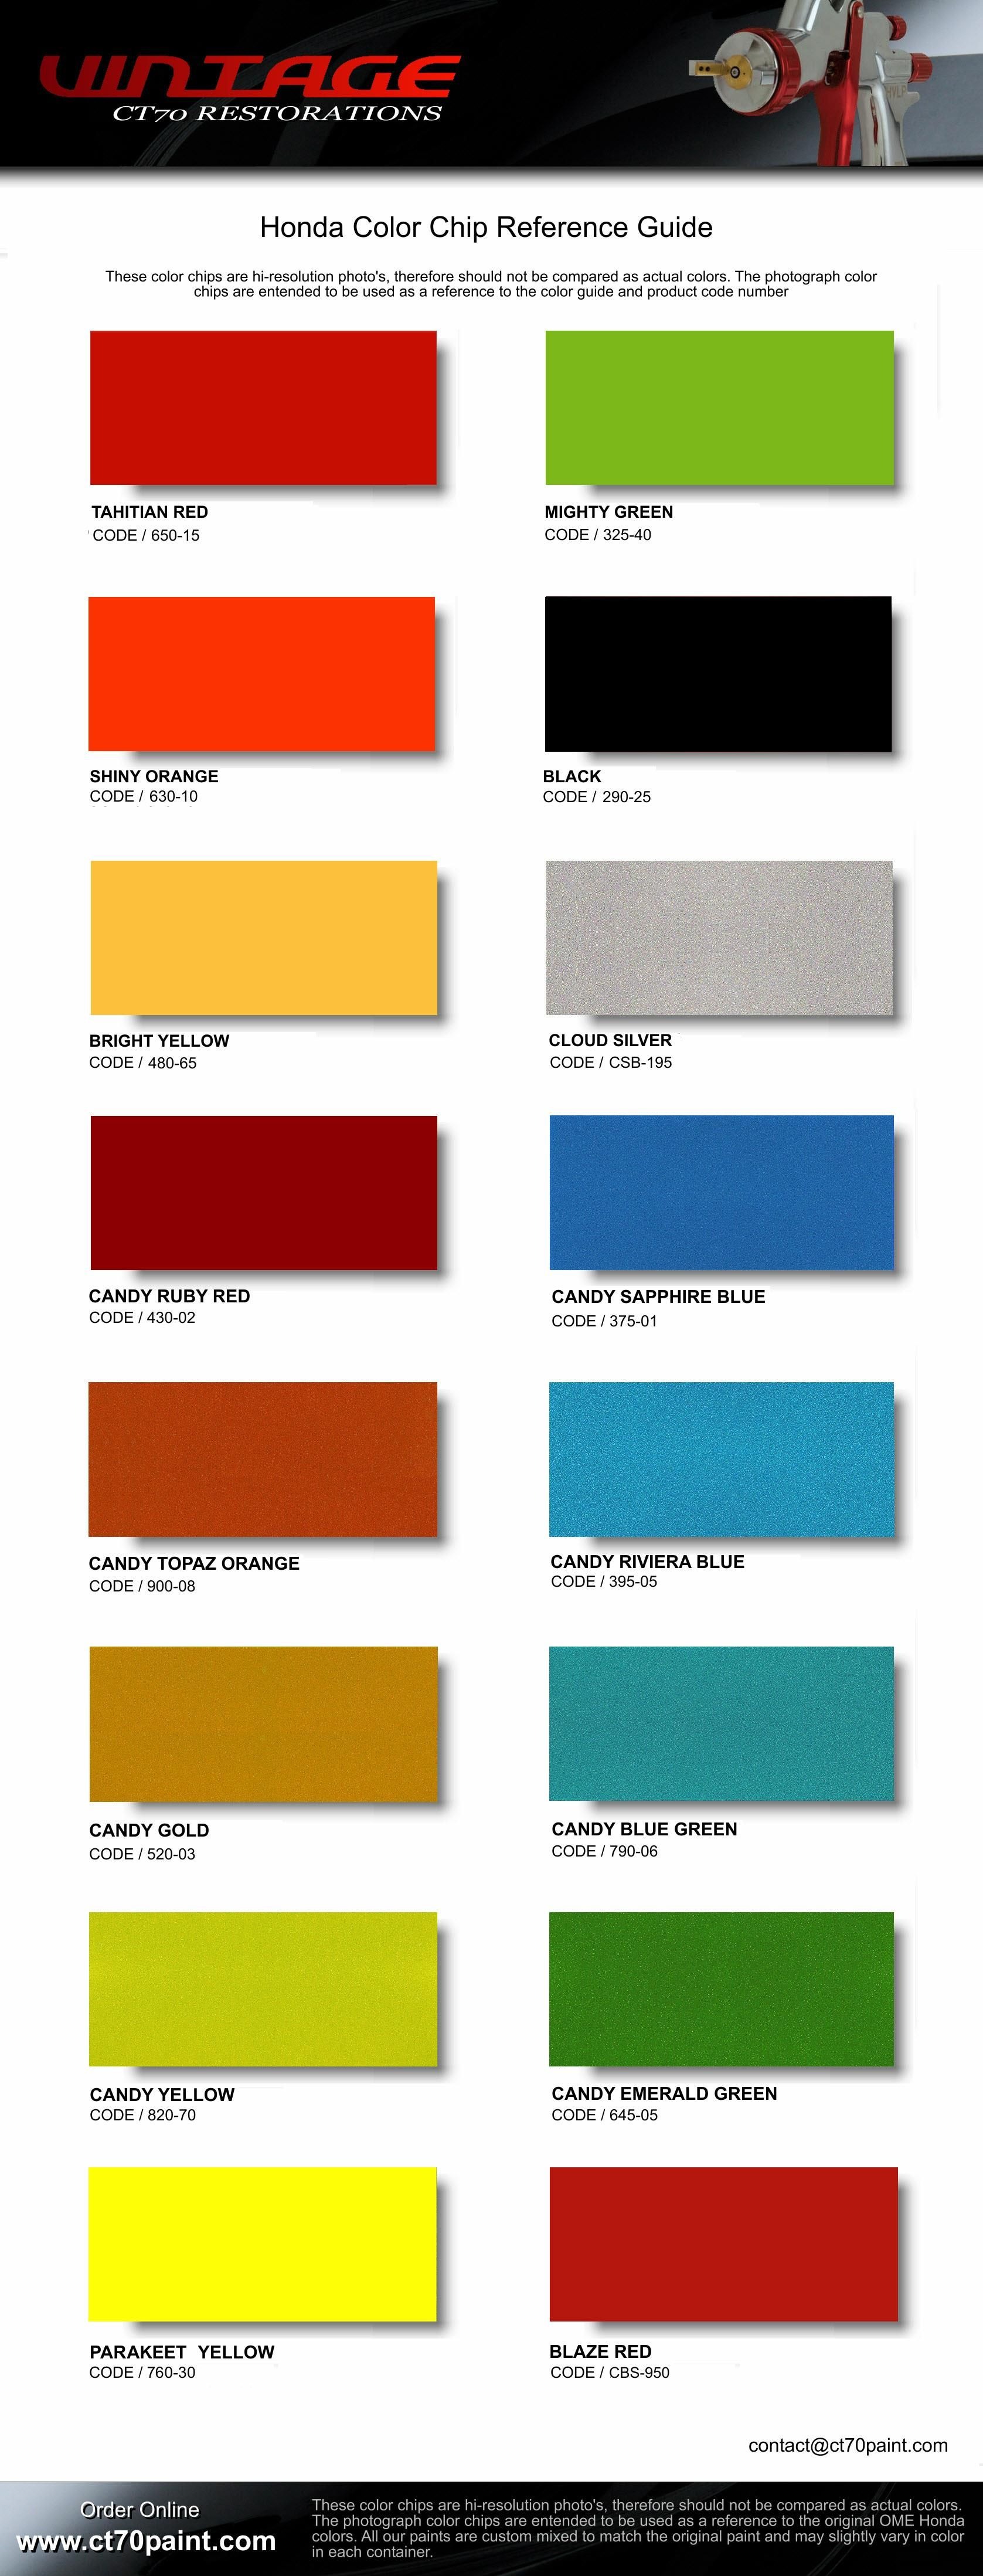 Honda paint color chart gallery free any chart examples honda paint chips honda z 50 pinterest paint chips and honda honda paint chips nvjuhfo gallery nvjuhfo Choice Image